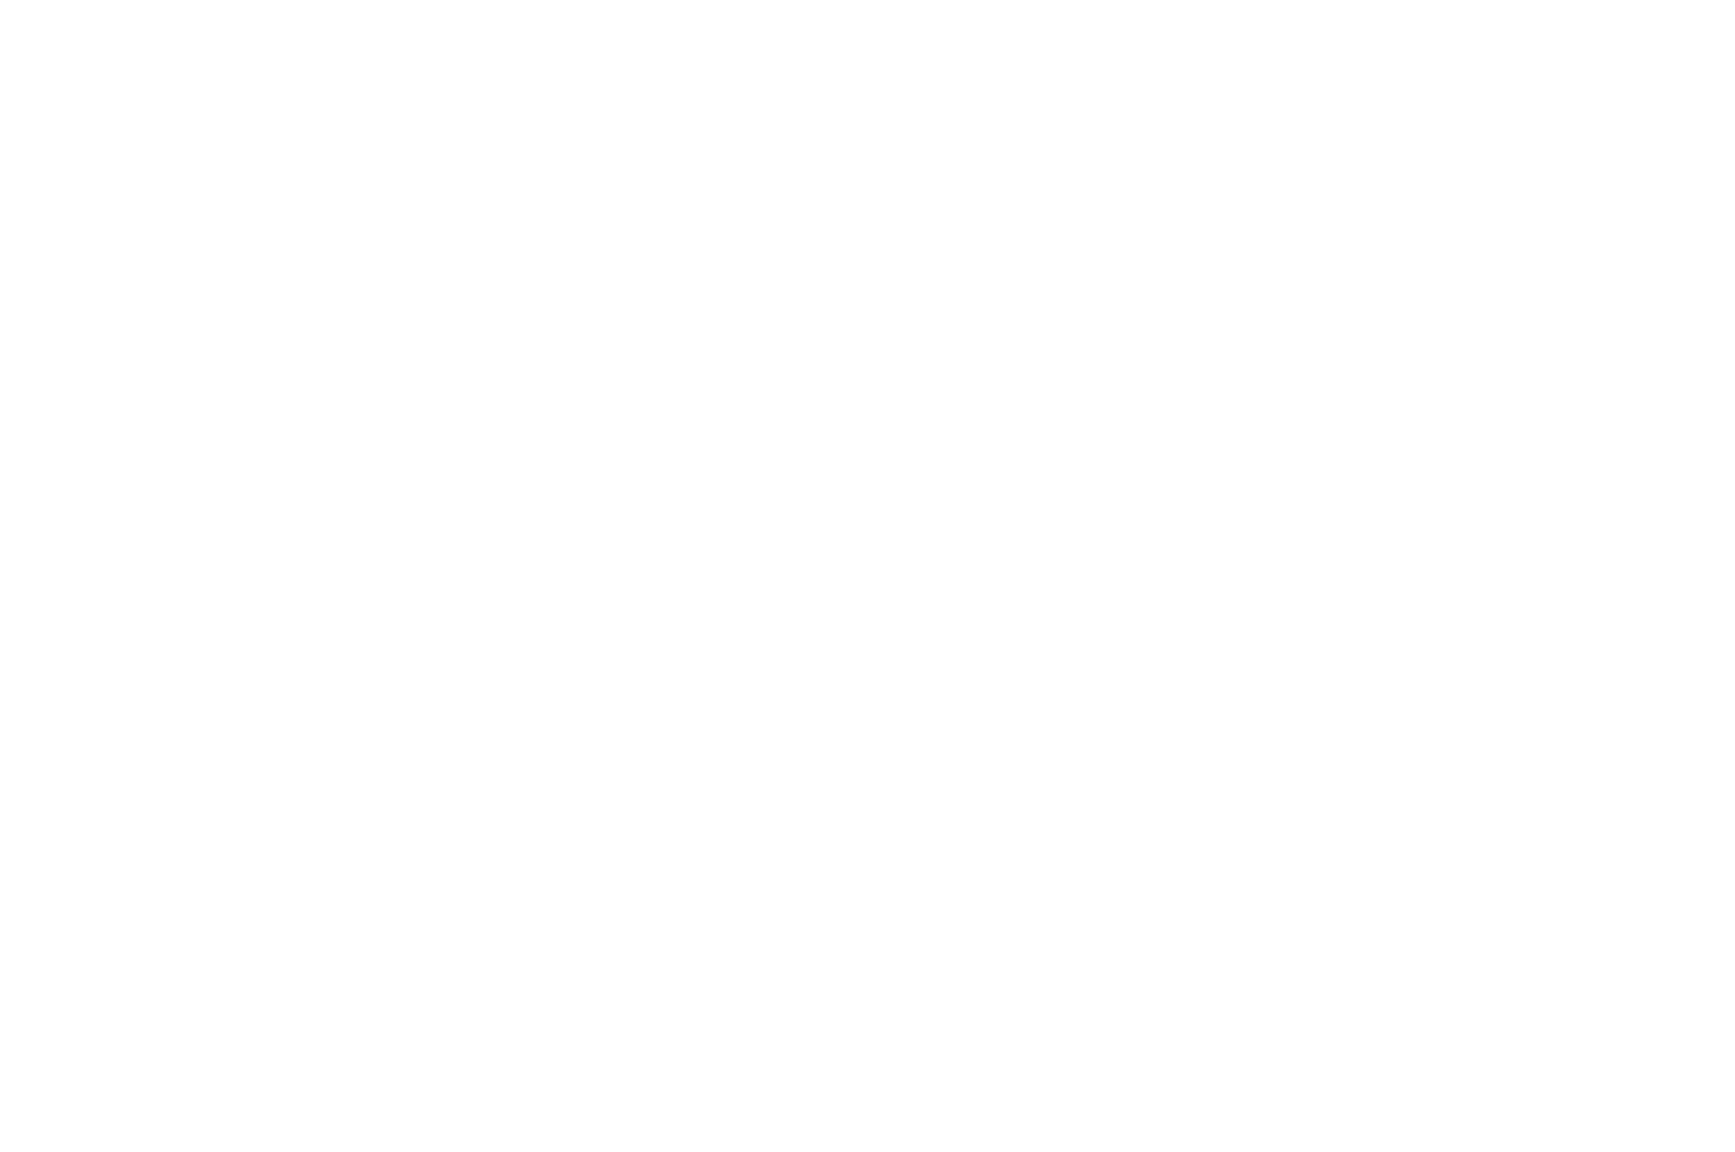 WINNER - BEST TV PILOT HOBOKEN INTERNATIONAL FILM FEST. - 2019-2.png